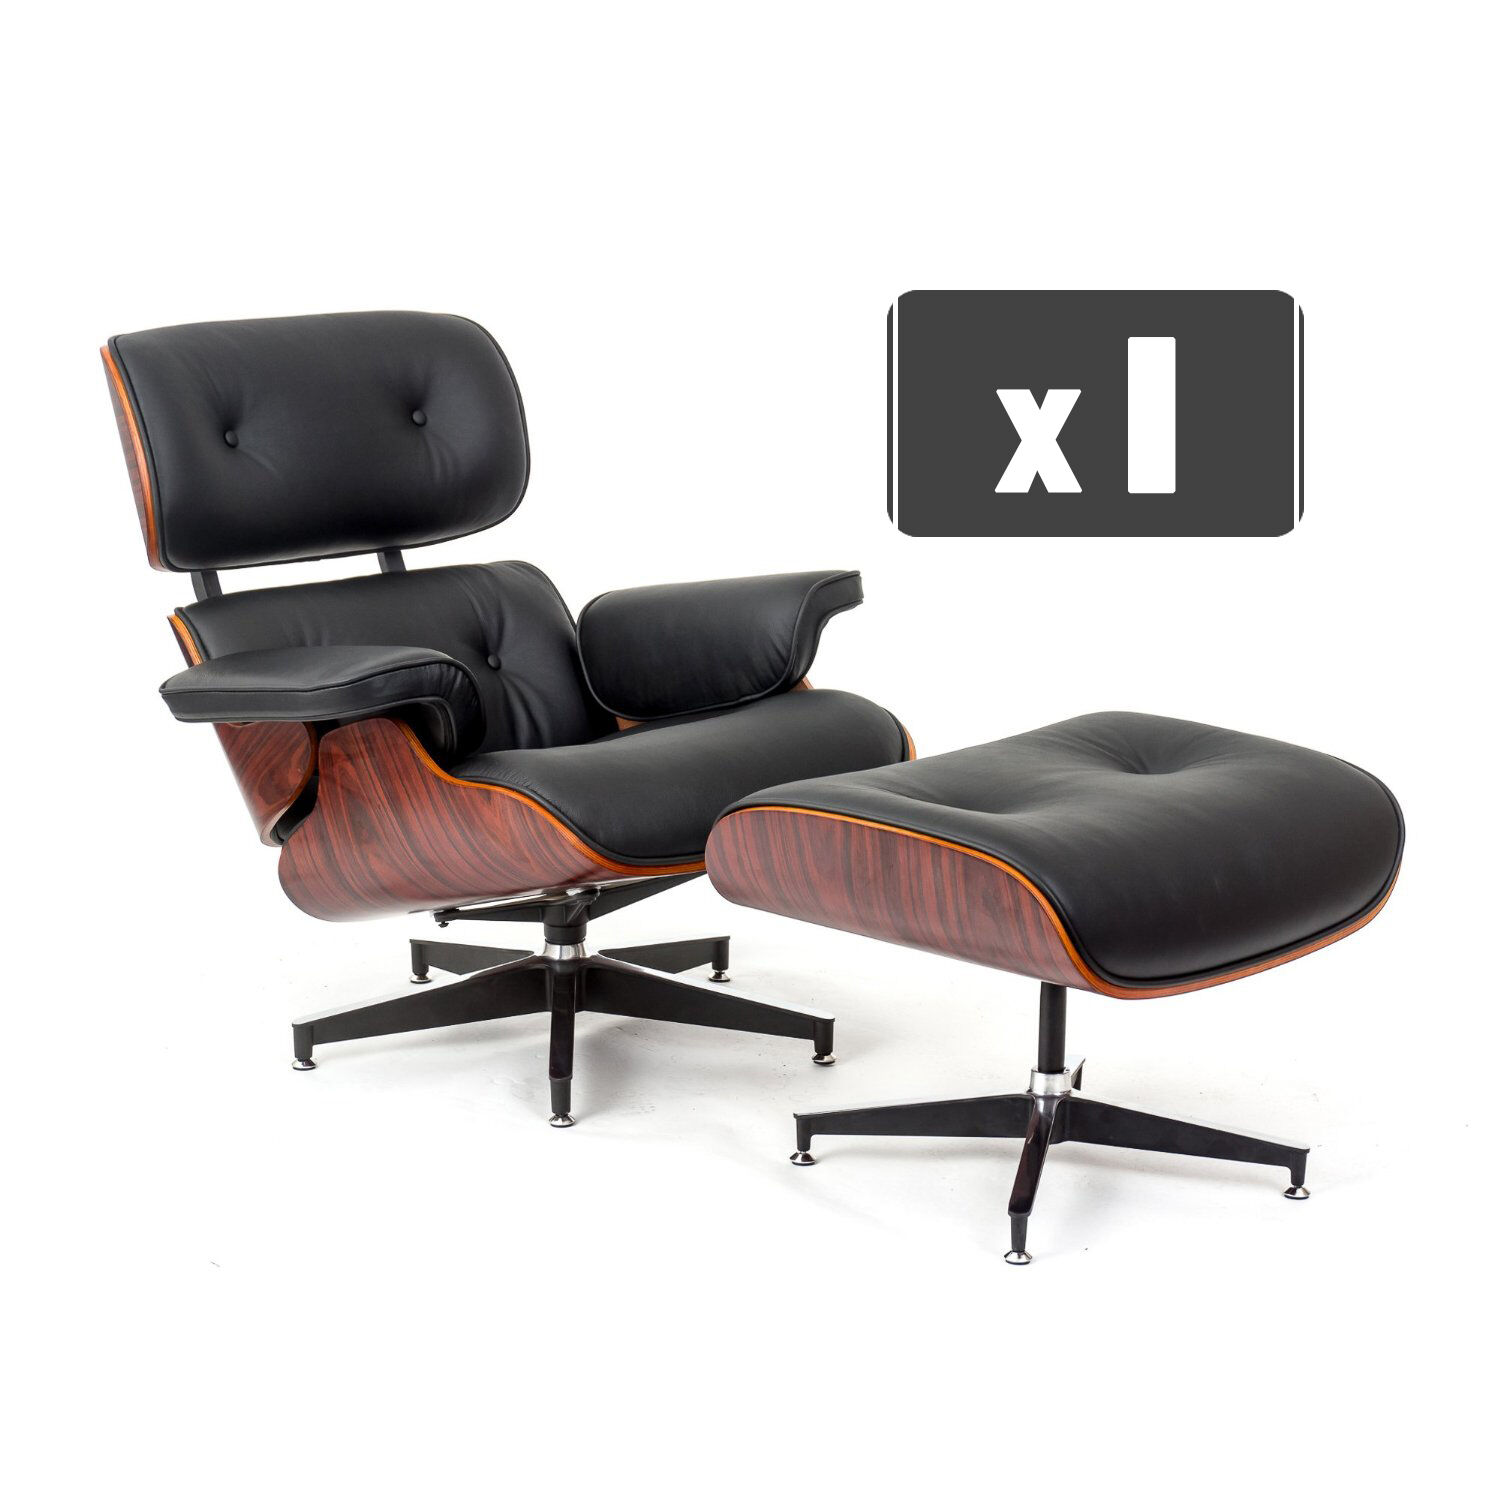 Replica Charles Eames Lounge Chair & Ottoman In Black Leather Rosewood